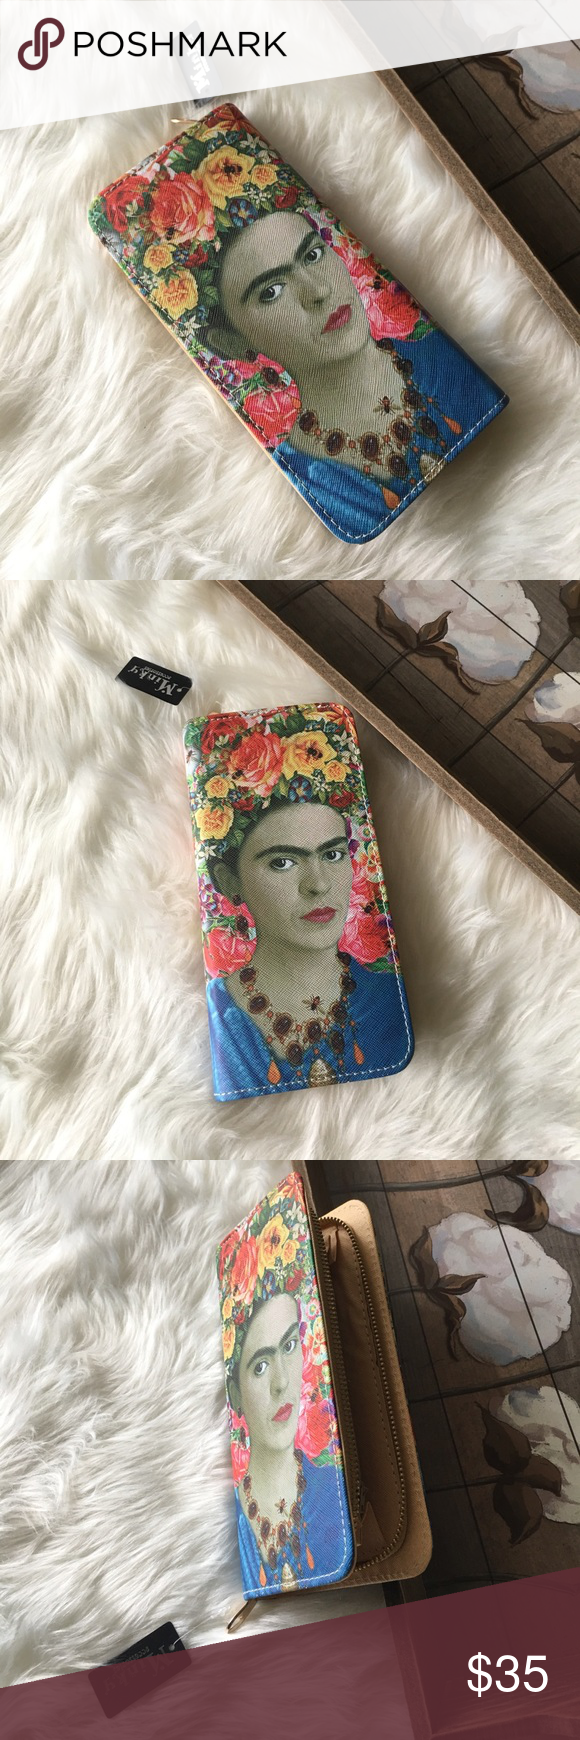 Frida Kahlo Portrait Bee Wallet Lovely Frida Kahlo bee Portrait Wallet in excellent brand new with tags condition. Super chic and stylish! Perfect for all occasions! Boutique Bags Wallets